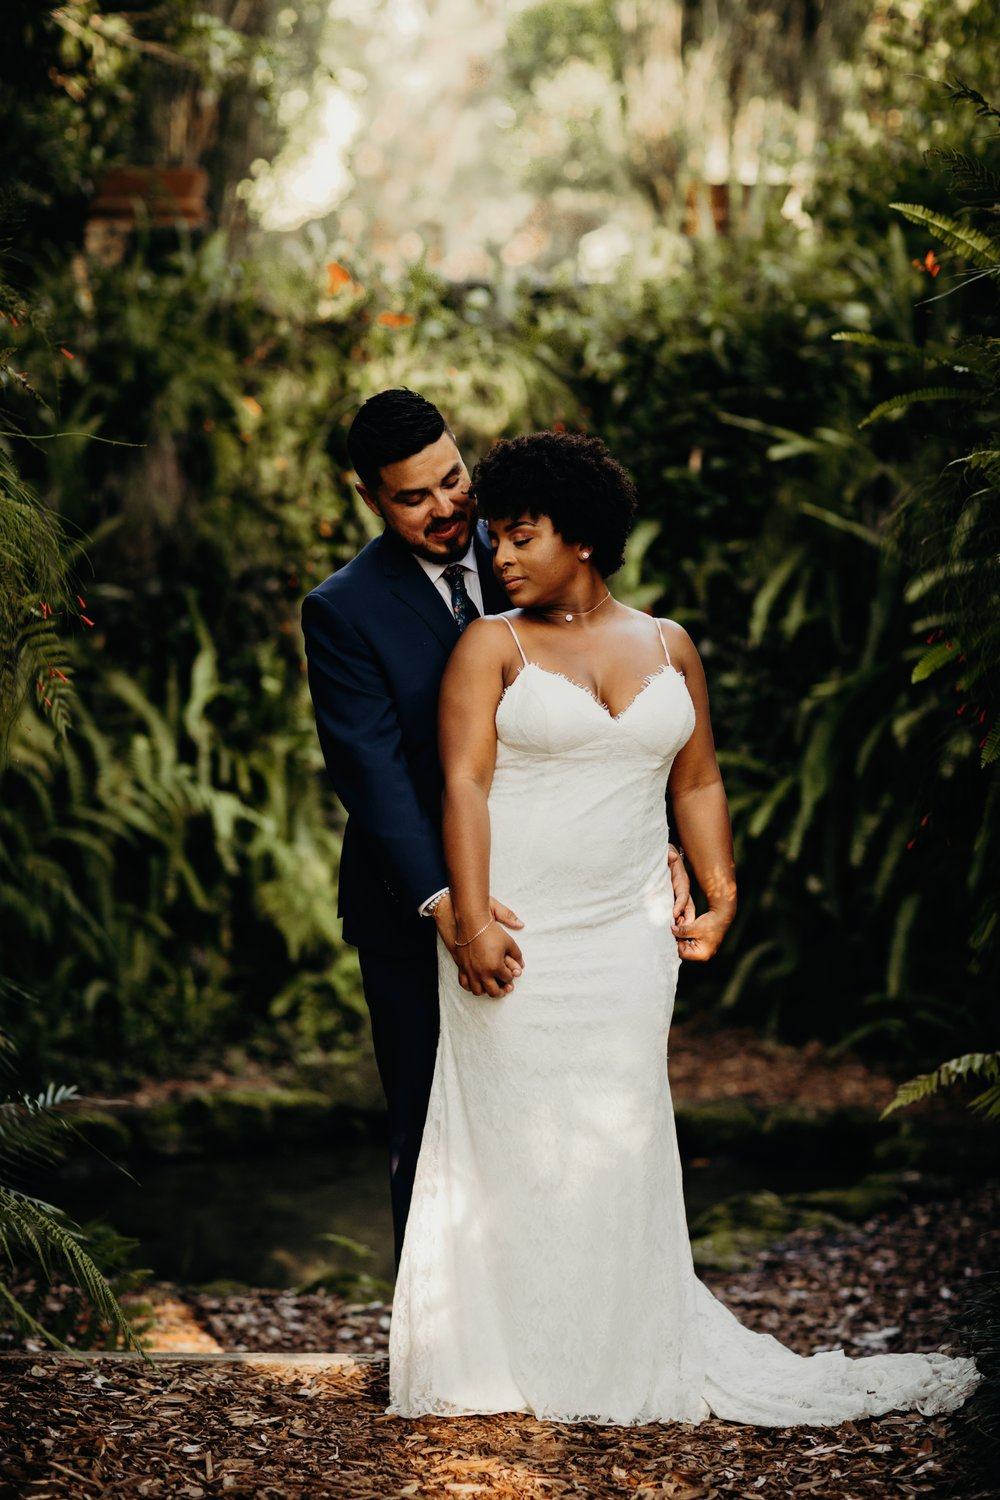 Jose and Valerie | Wedding | Bok Tower Gardens | Photography by Vanessa Boy (743 of 204)final.jpg